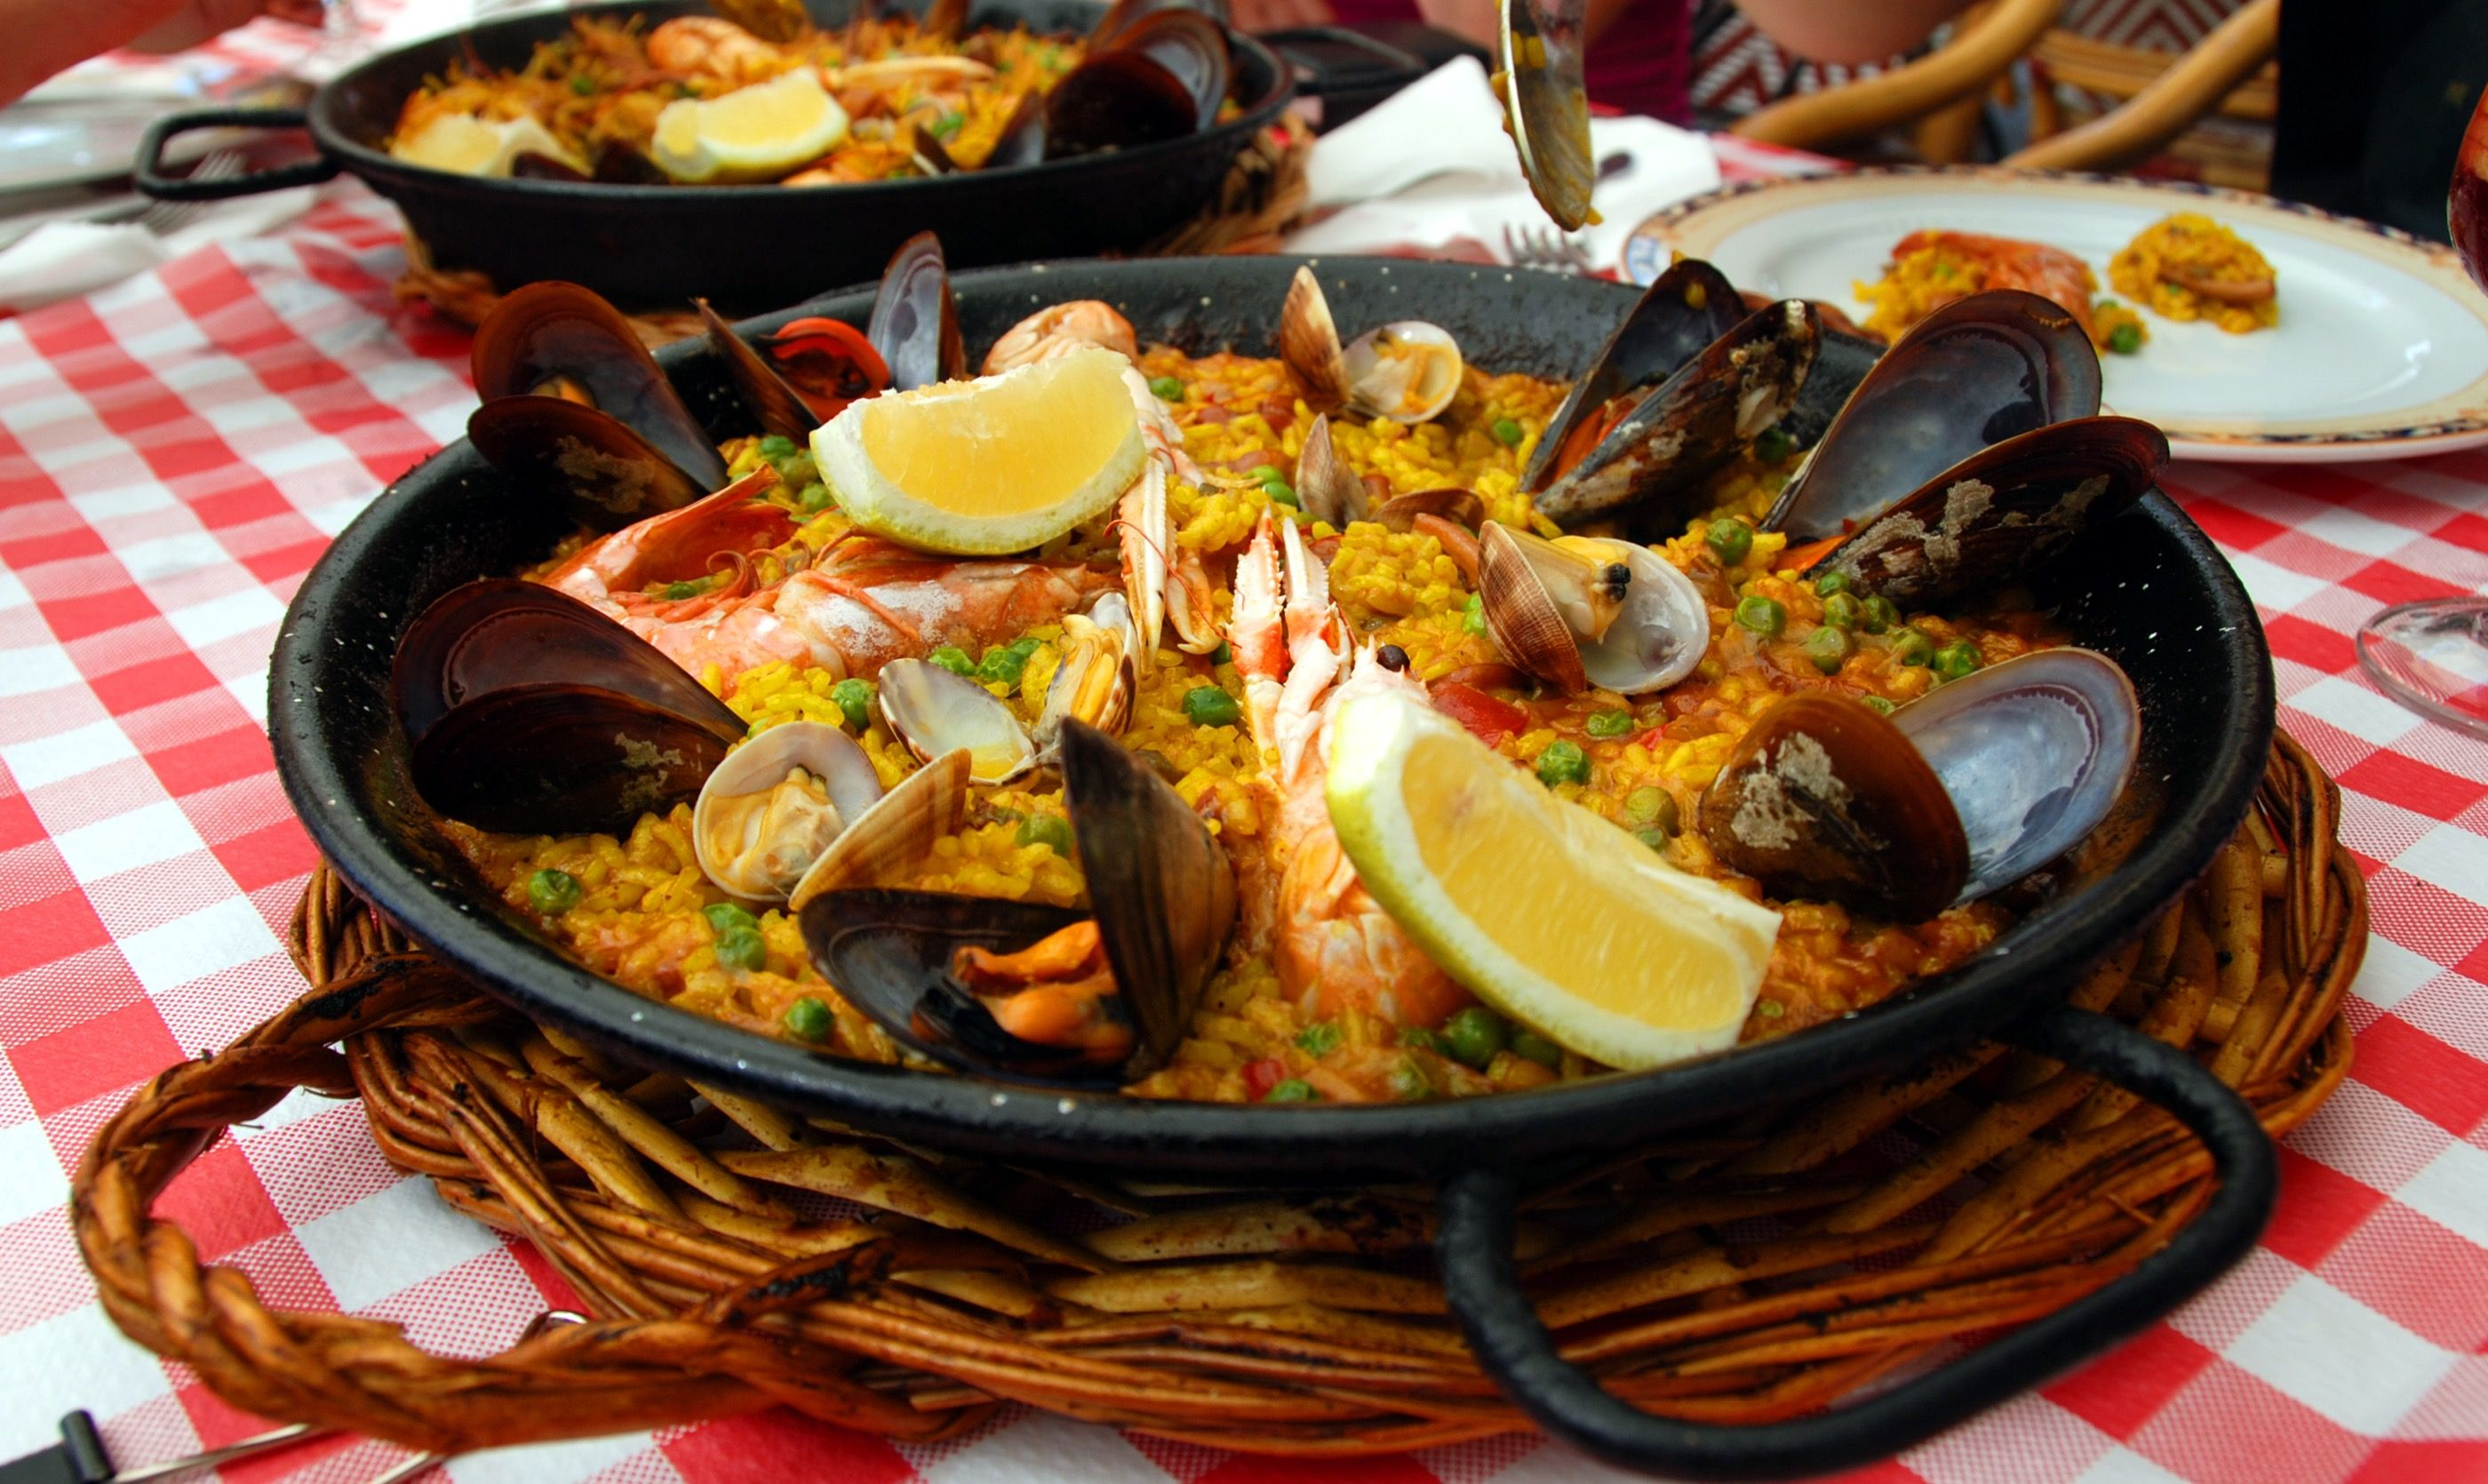 Spanish paella in the pan (Dreamstime)